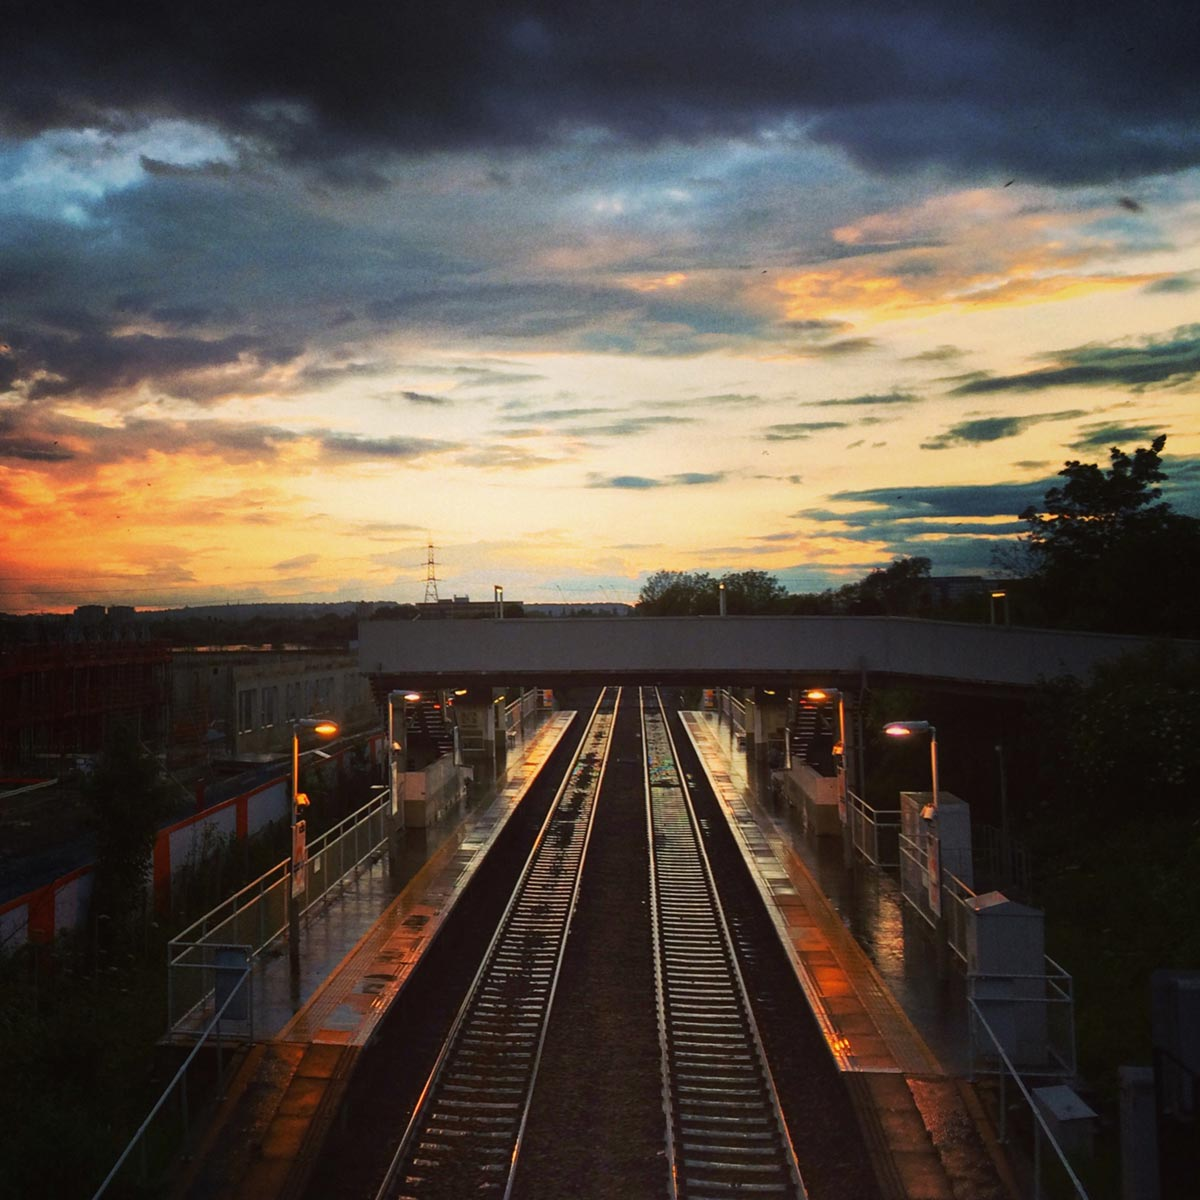 Blackhorse Road Overground Station sunset